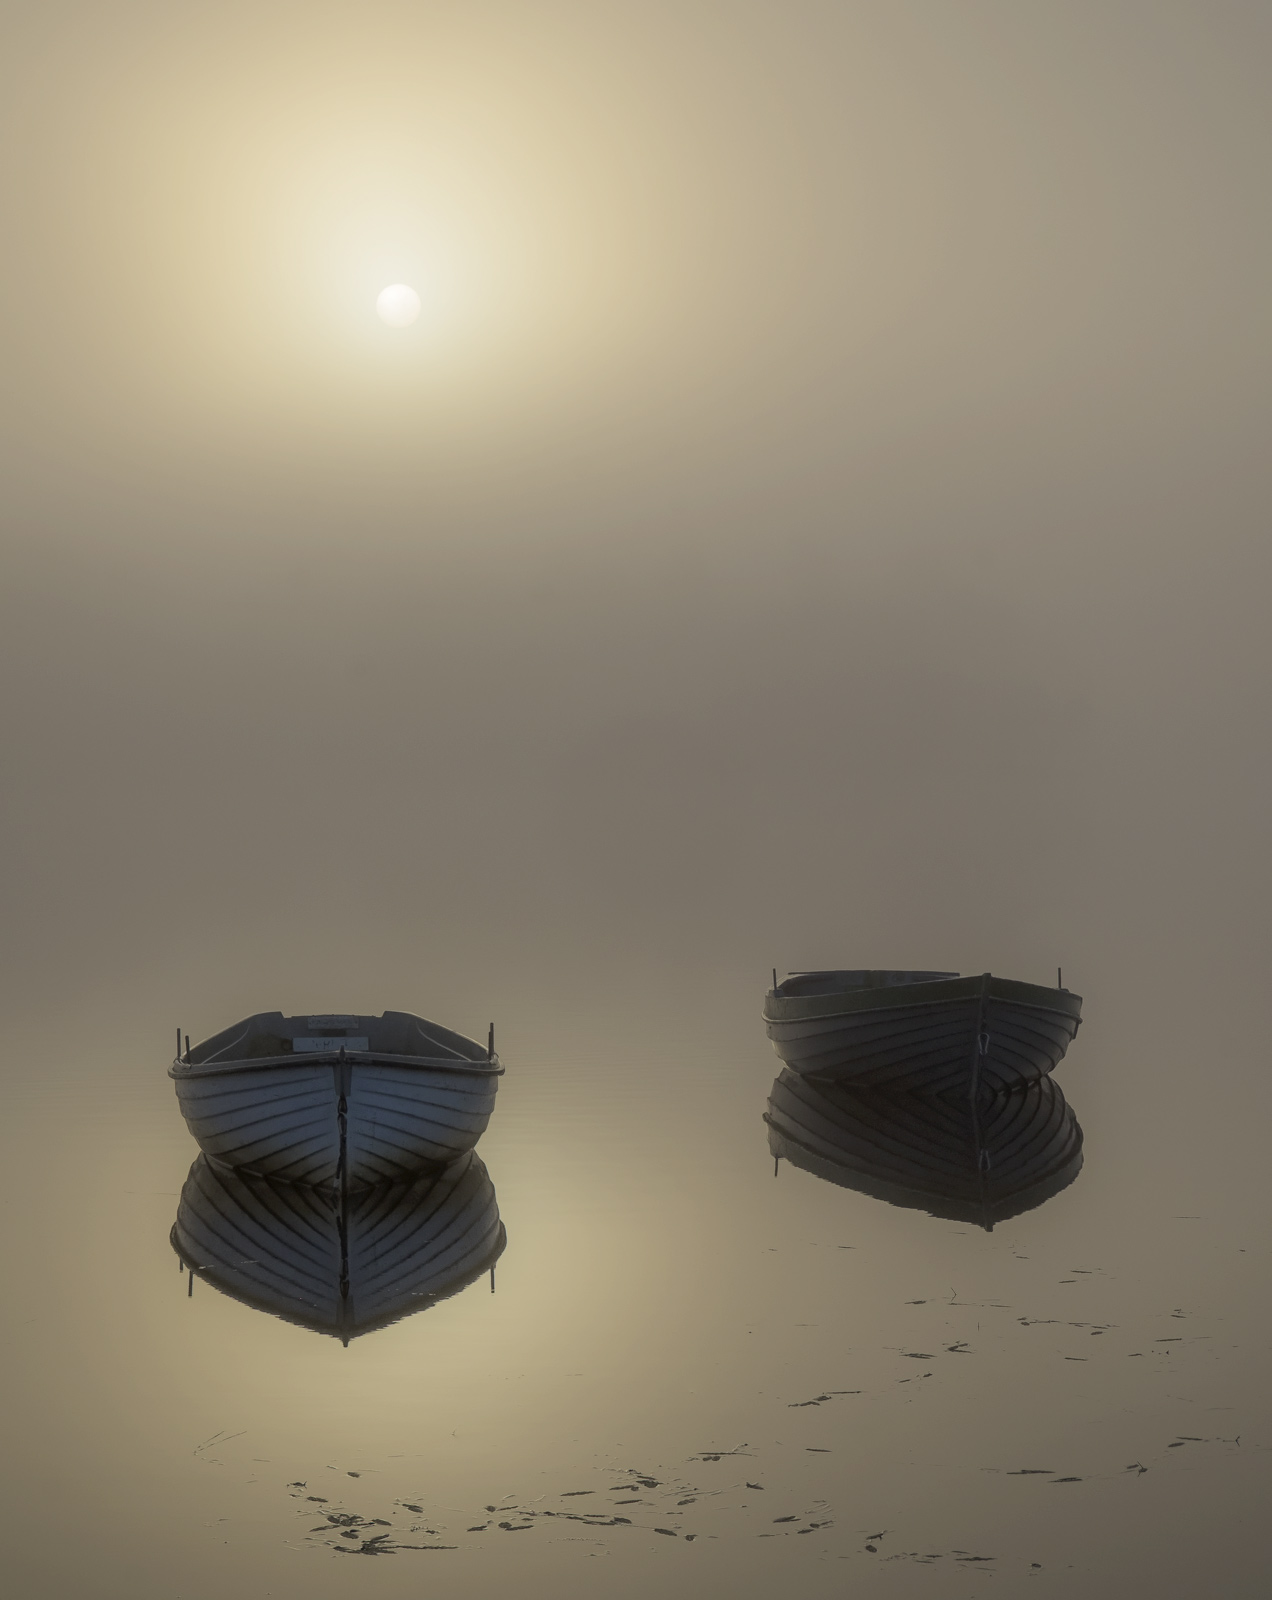 Sublime Rusky 3, Loch Rusky, Trossachs, Scotland, pair, pale blue, rowing boats, wood, sunrise, mist, reflected, etherea, photo